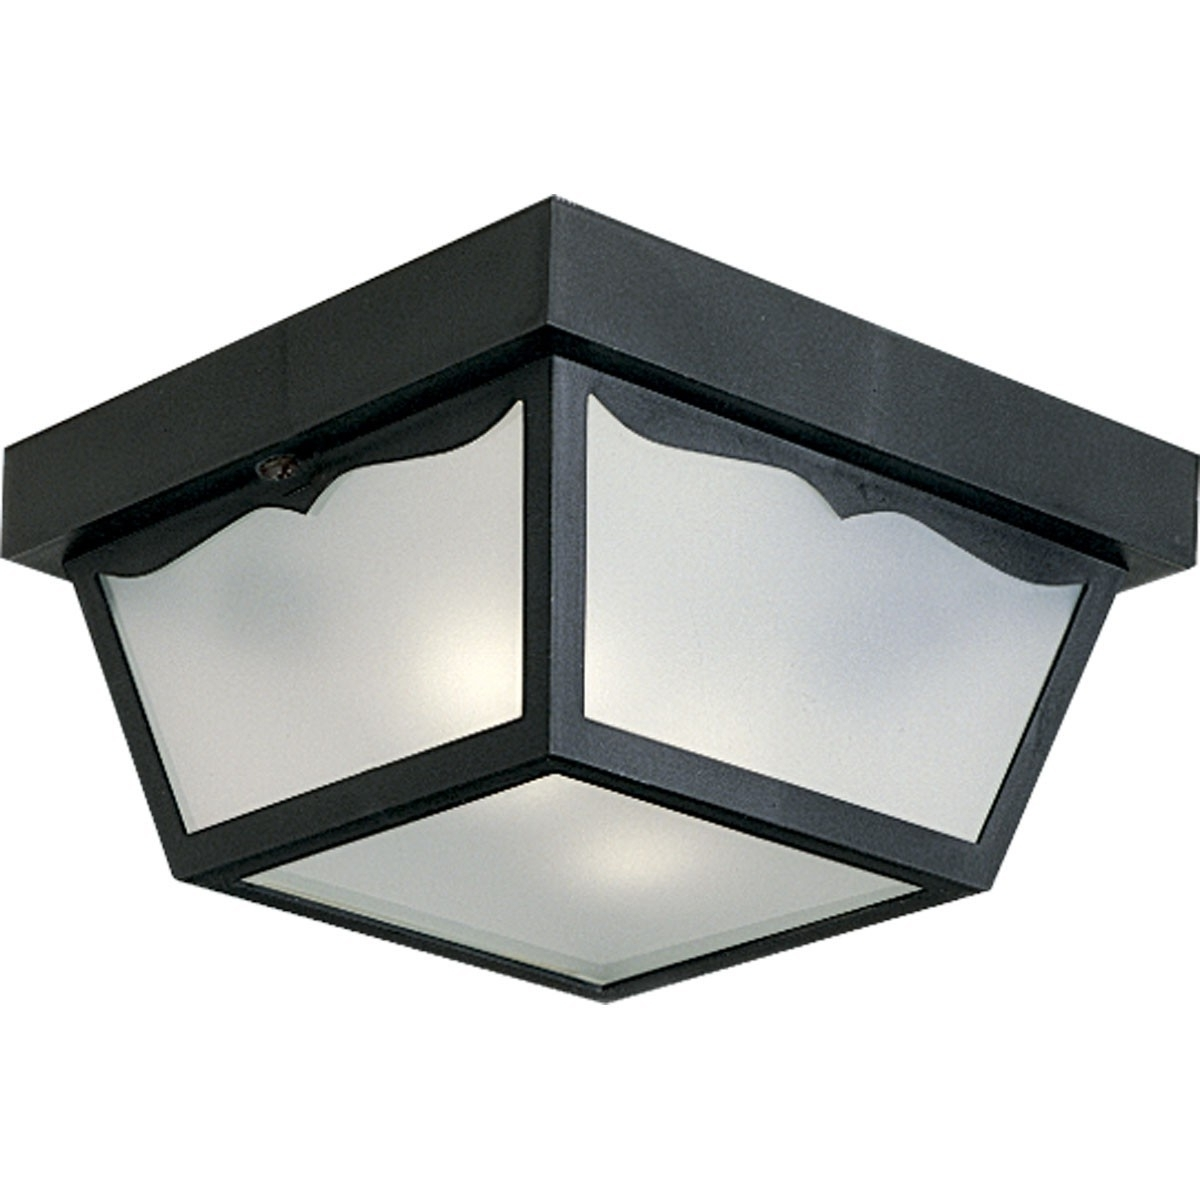 60w Outdoor Flush Mount Non Metallic Ceiling Light – Progress Within Latest Cheap Outdoor Ceiling Lights (View 5 of 20)